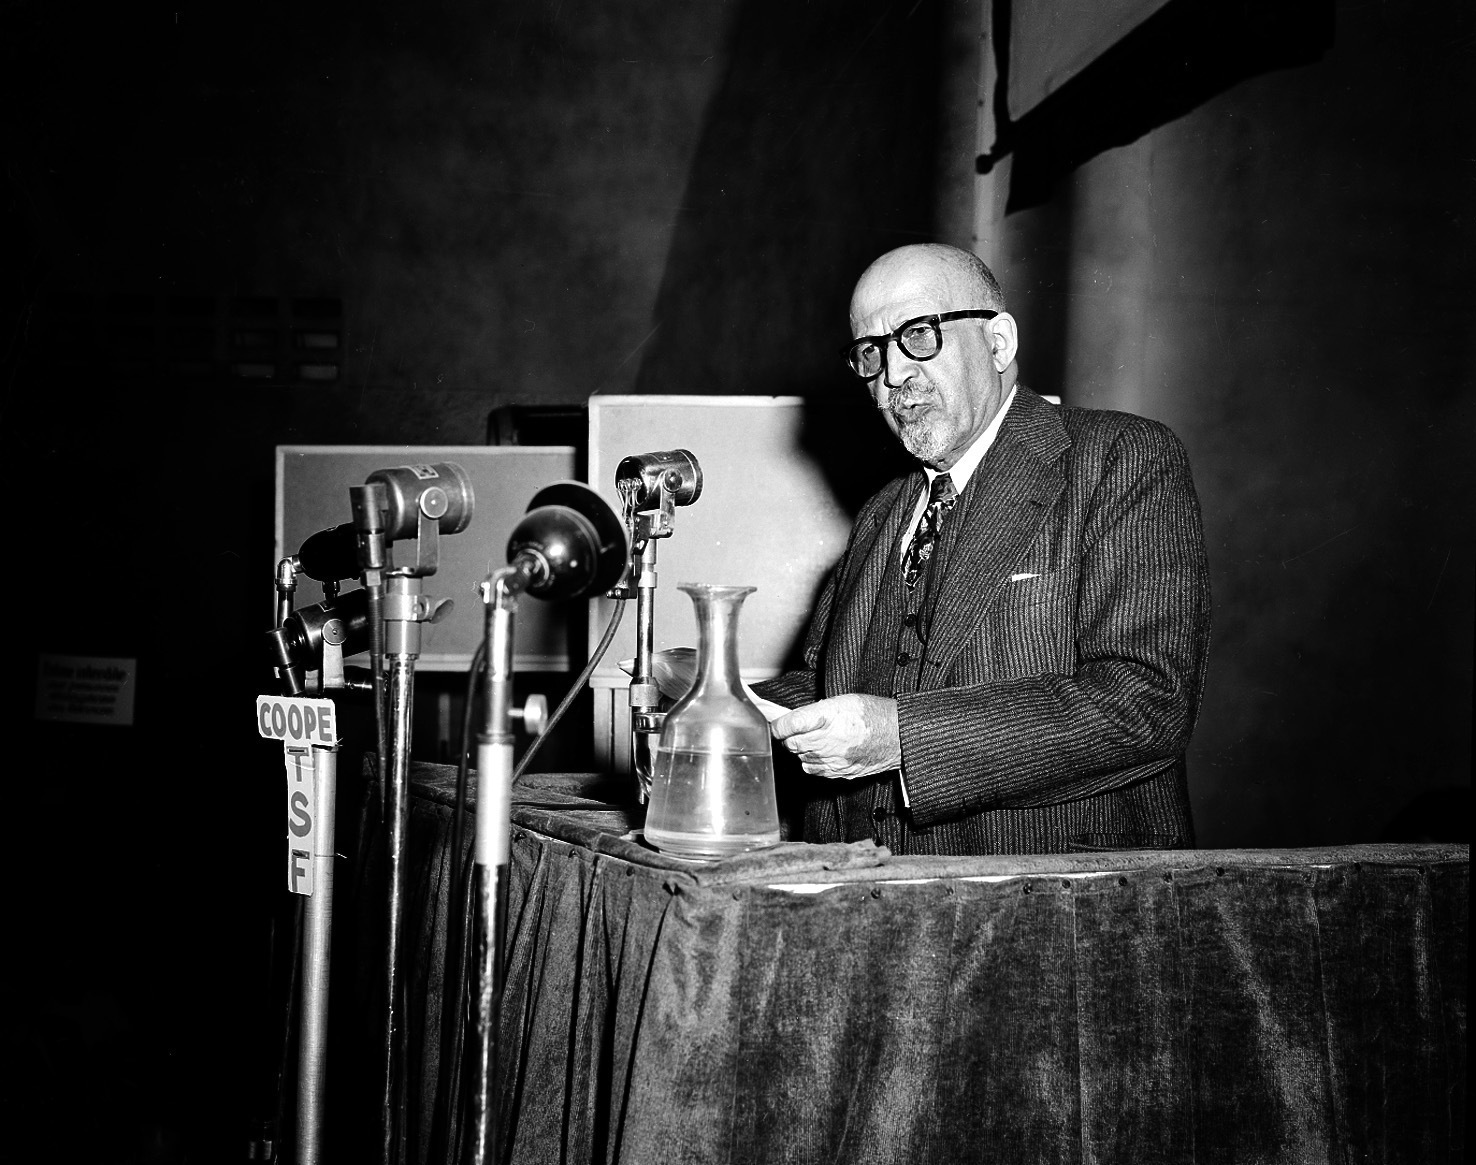 W.E.B. Du Bois, educator, writer and co-chairman of the U.S. delegation, addresses the World Congress of Partisans of Peace at the Salle Pleyel in Paris, France, on April 22, 1949. A Harvard University choir group that rejected author W.E.B. Du Bois when he was a student because he was black will be celebrating his work through a musical tribute. (AP Photo, File)